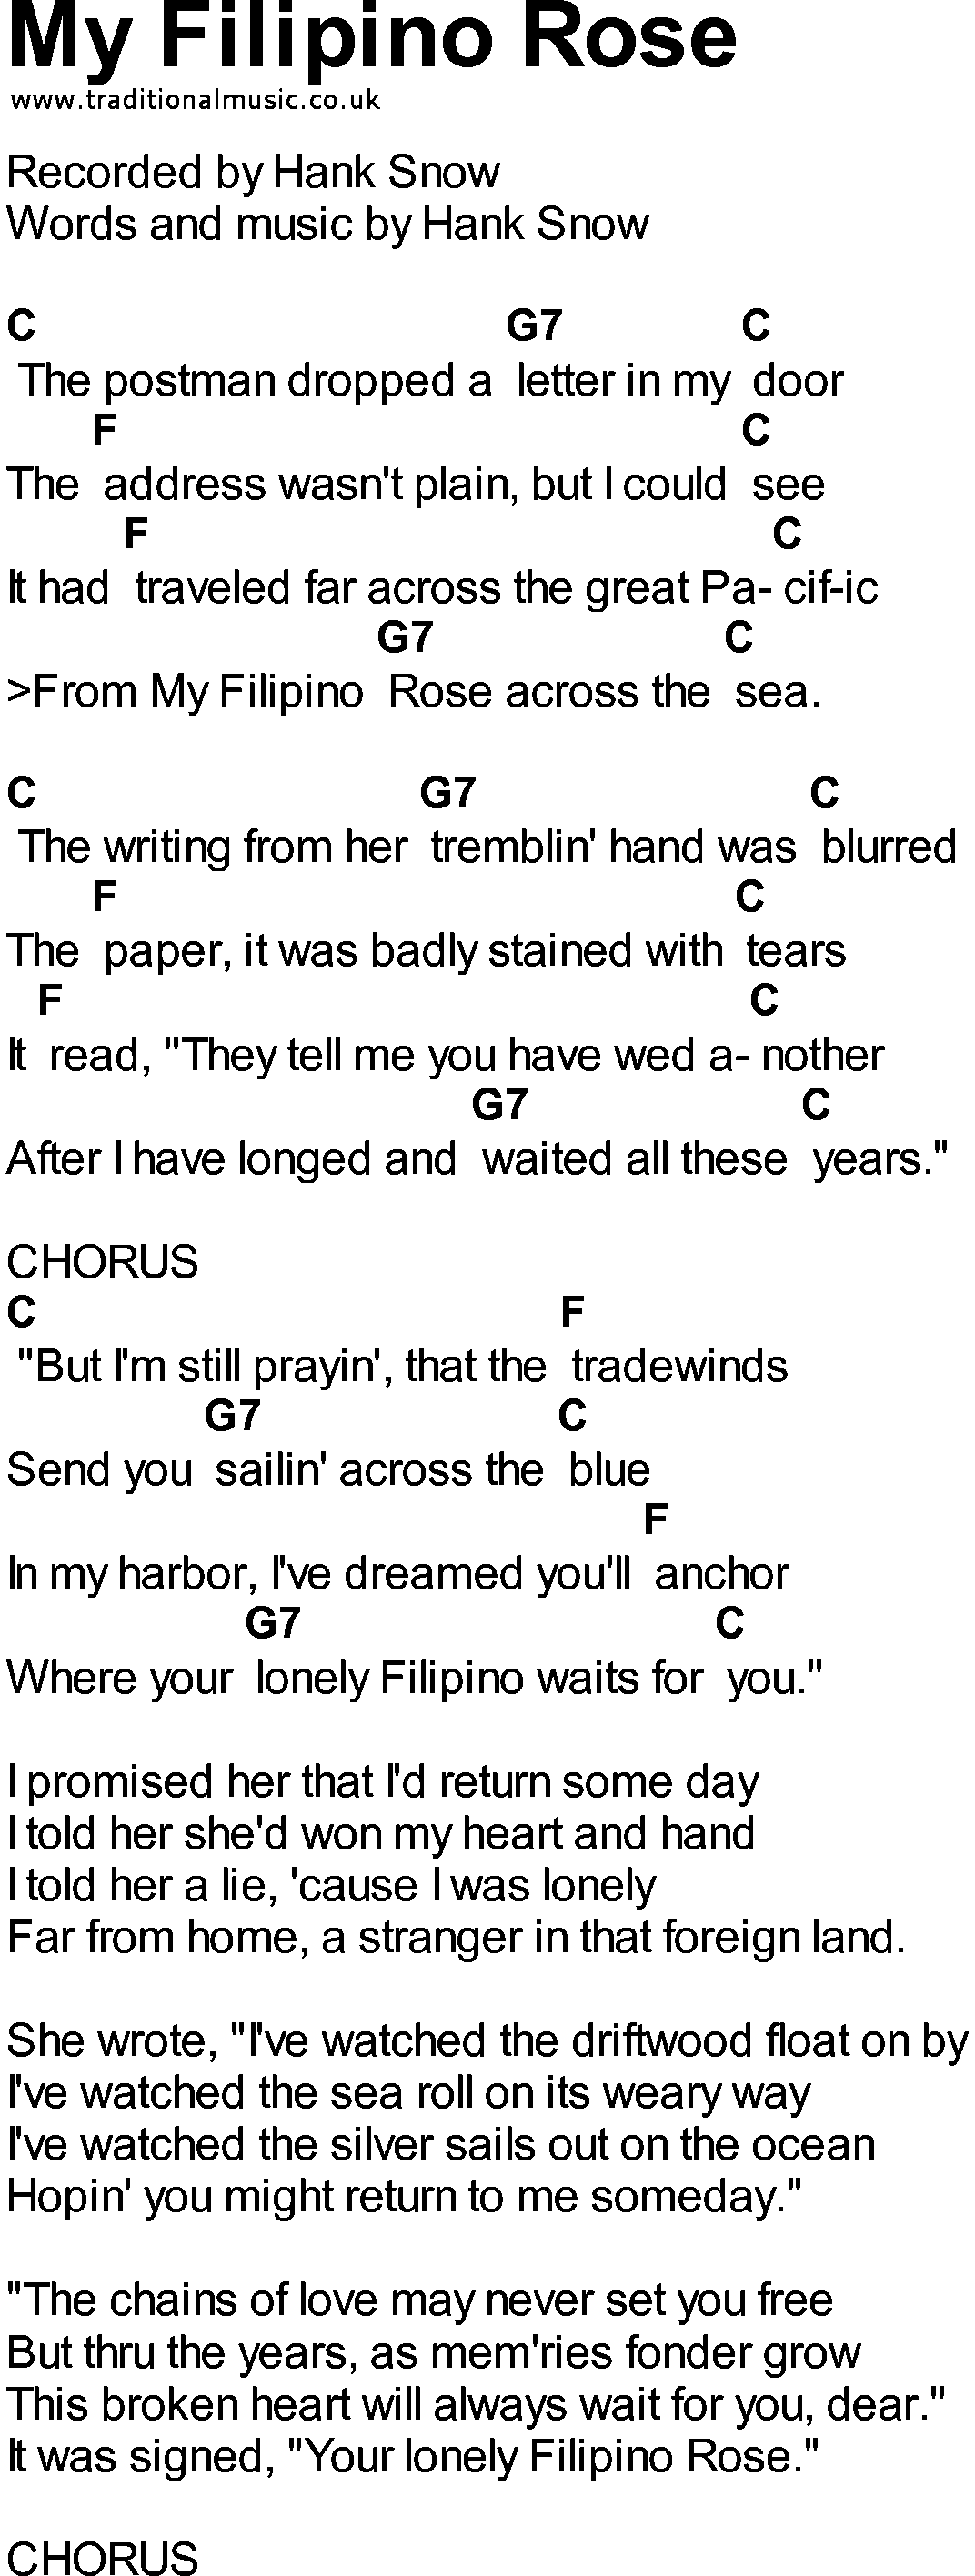 bluegrass songs with chords my filipino rose